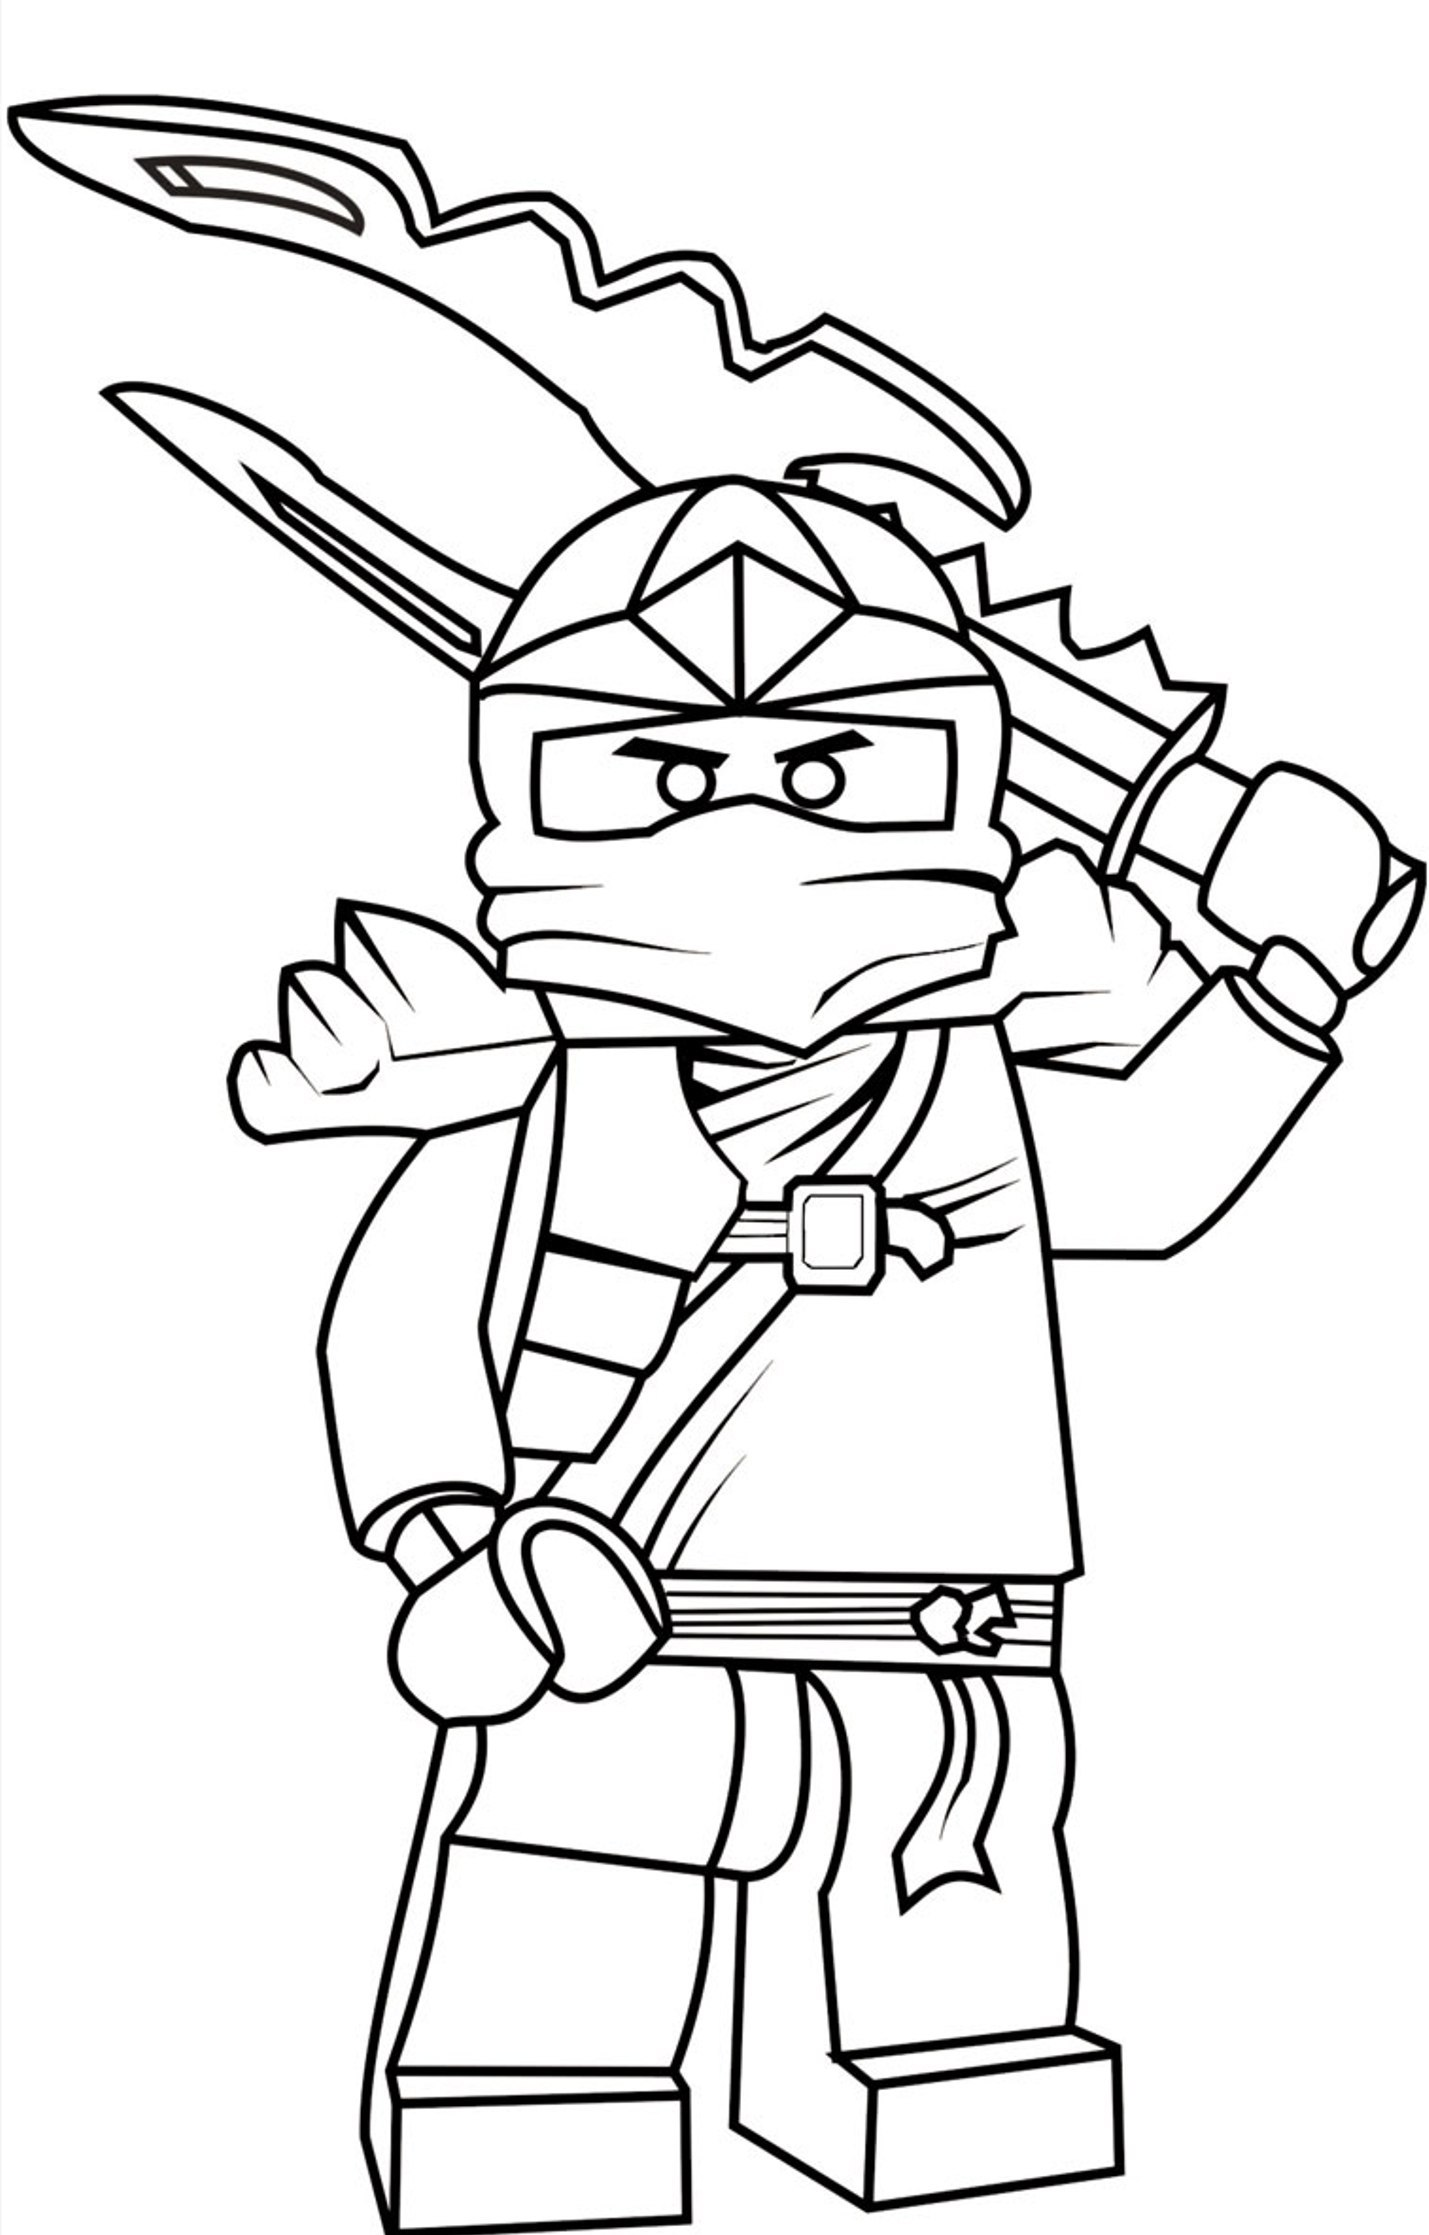 Lego Ninjago Coloring Pages 2015 Free Download Best Lego Ninjago